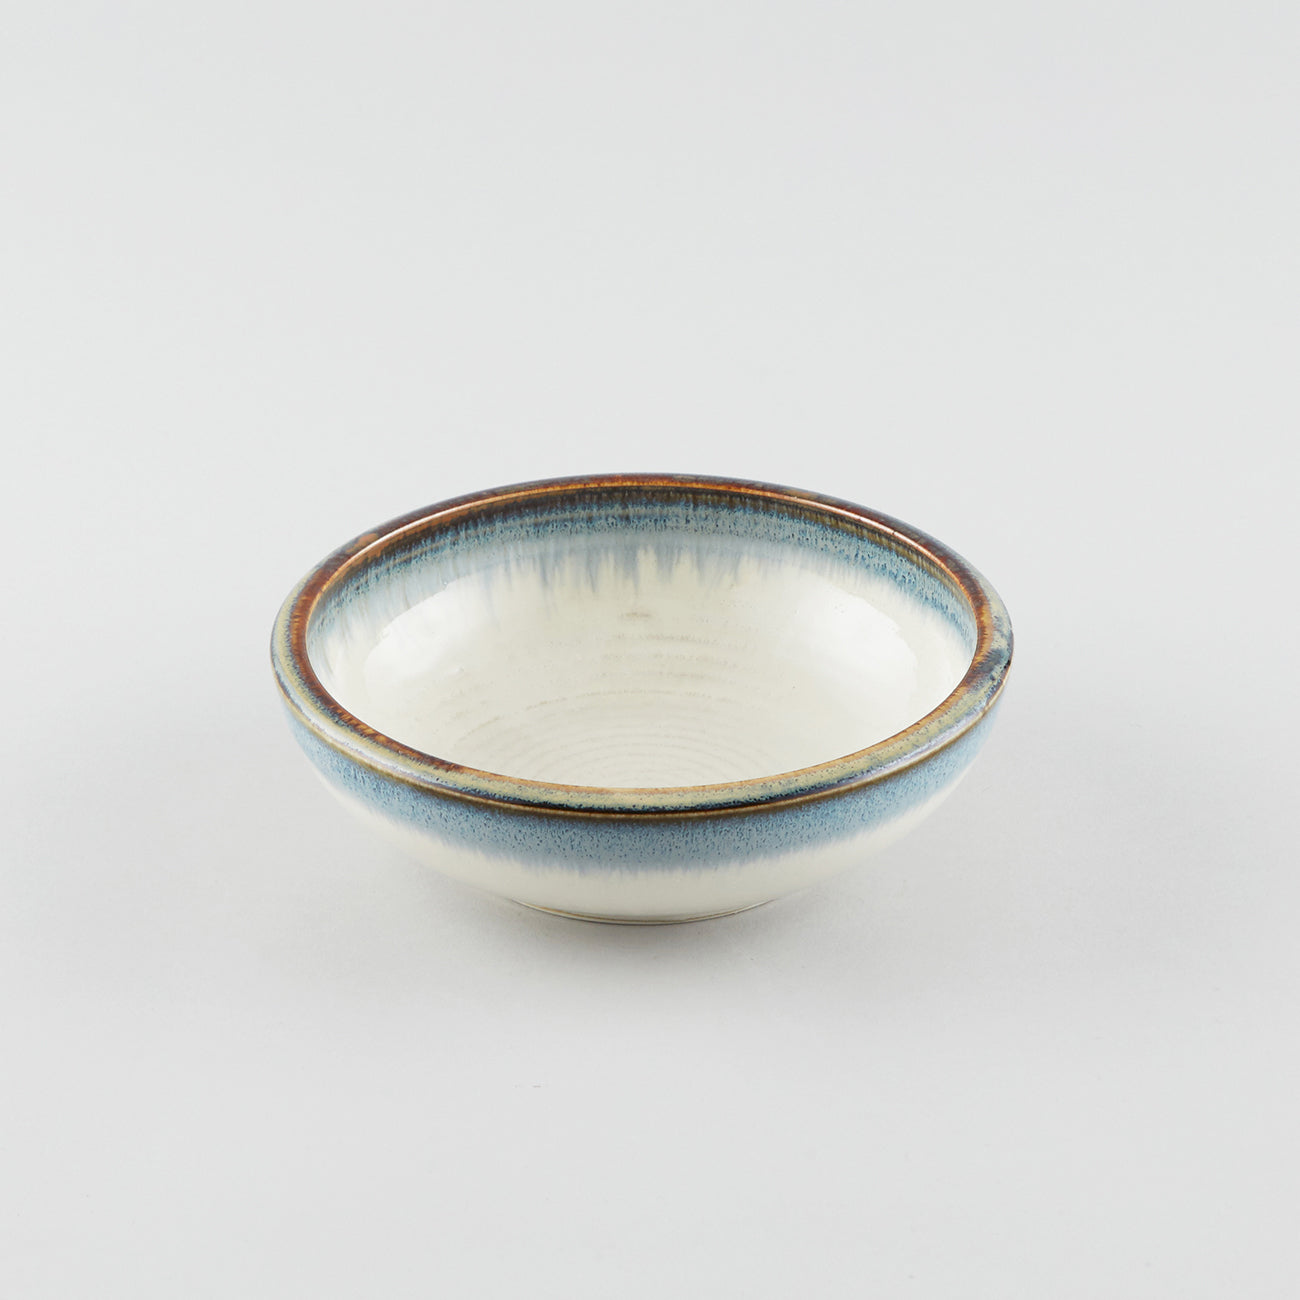 Earth White withBlue Tint Rim - Round Bowl